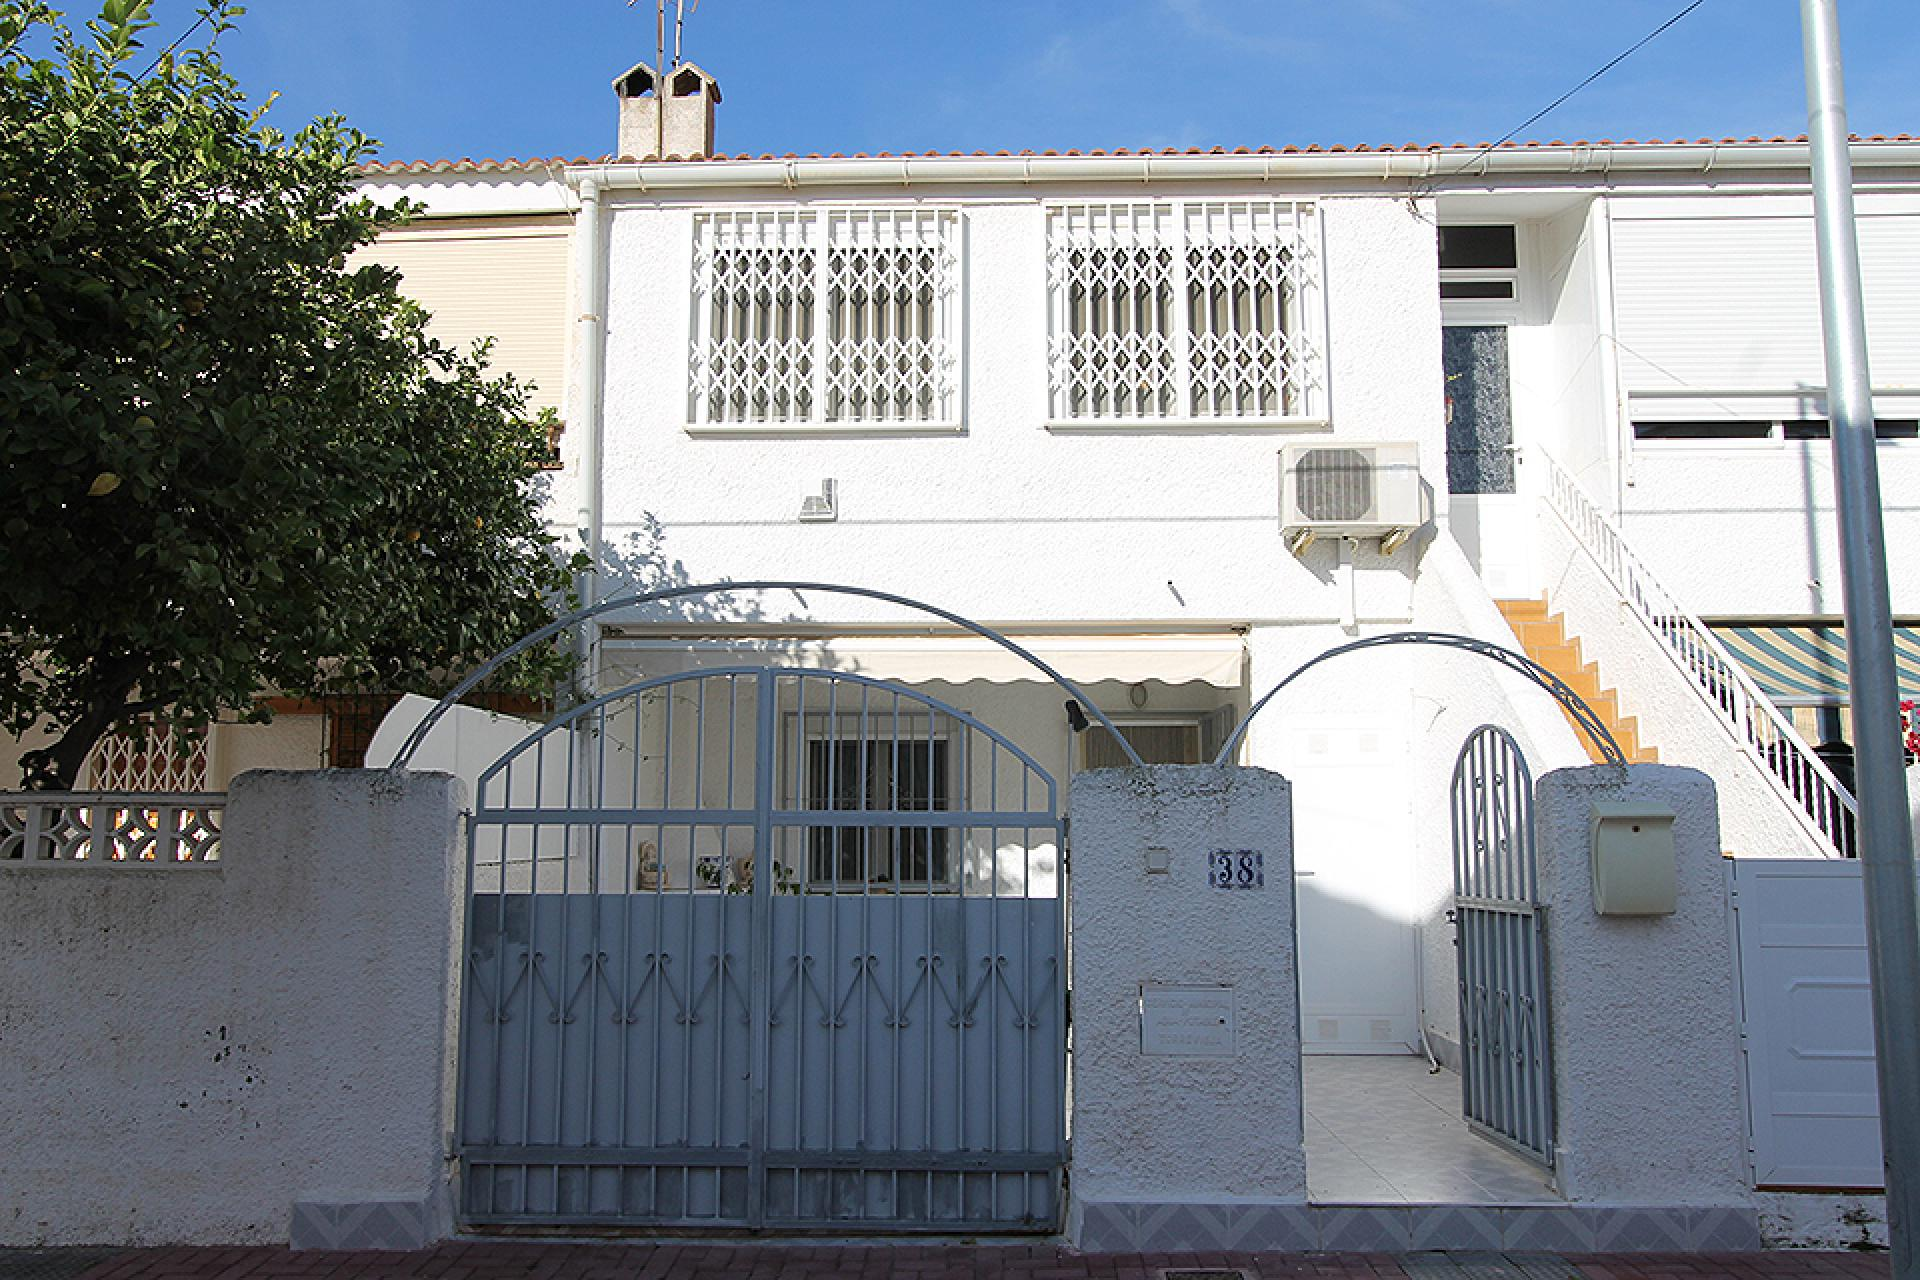 Townhouse in Torrevieja (Alicante)